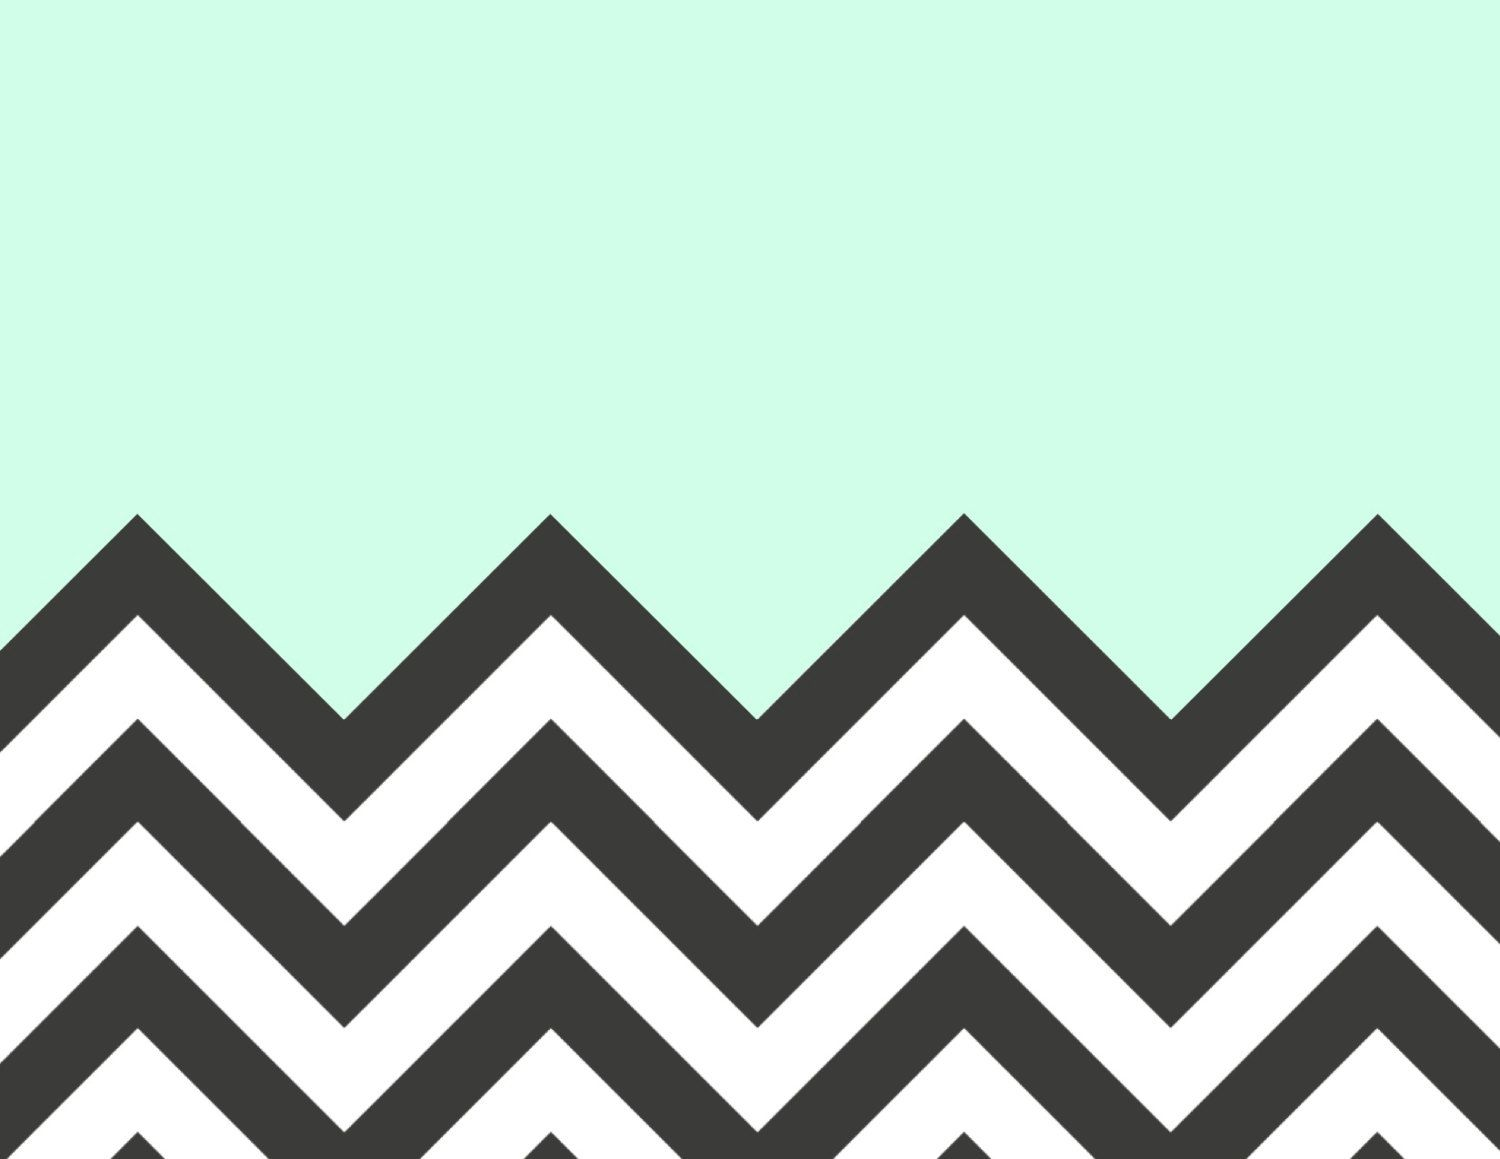 Iphone wallpapers tumblr chevron - Chevron Dim Blue And Black Iphone Plus Wallpaper Zigzag